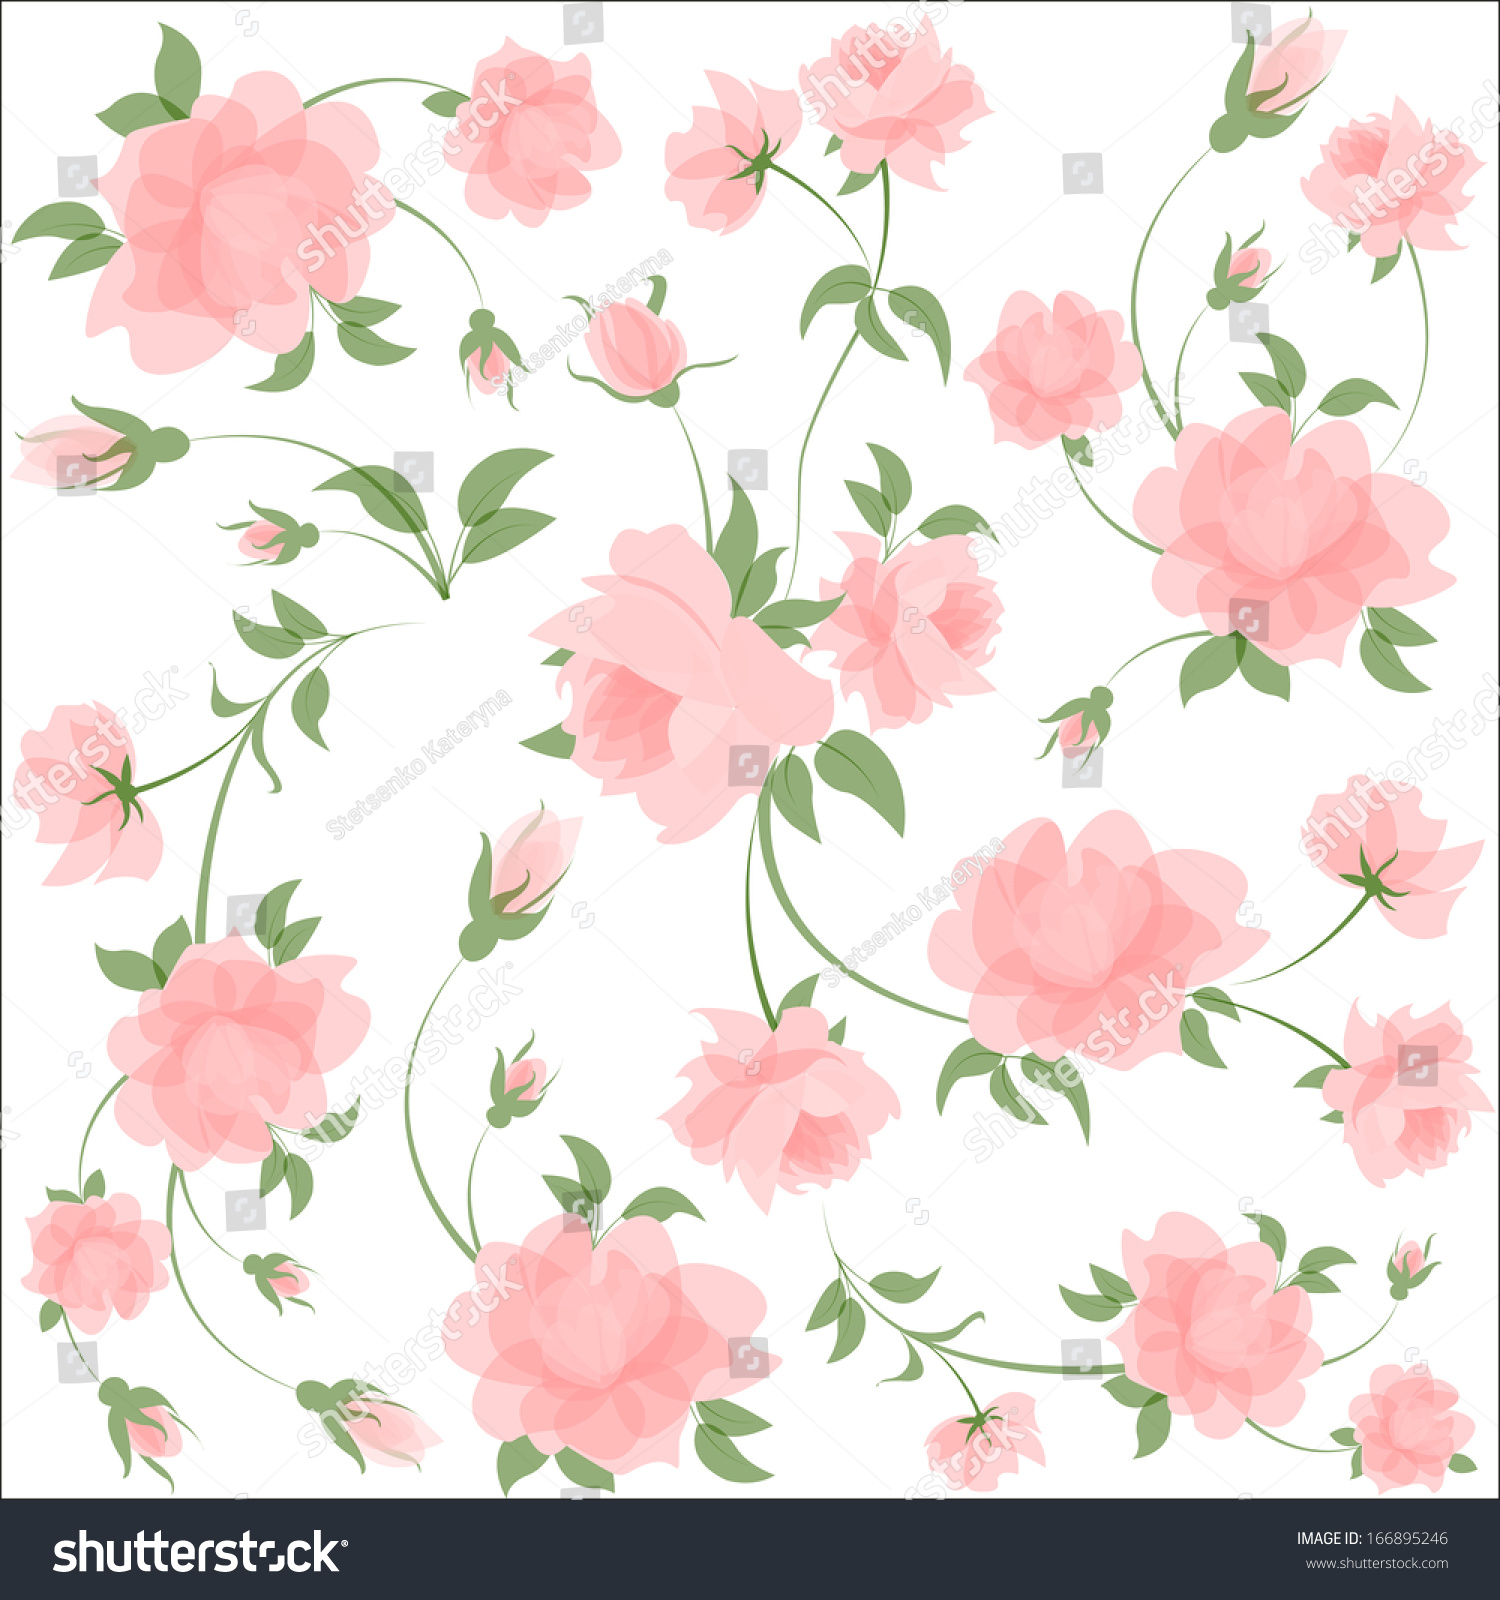 Wedding flowers vector background | EZ Canvas